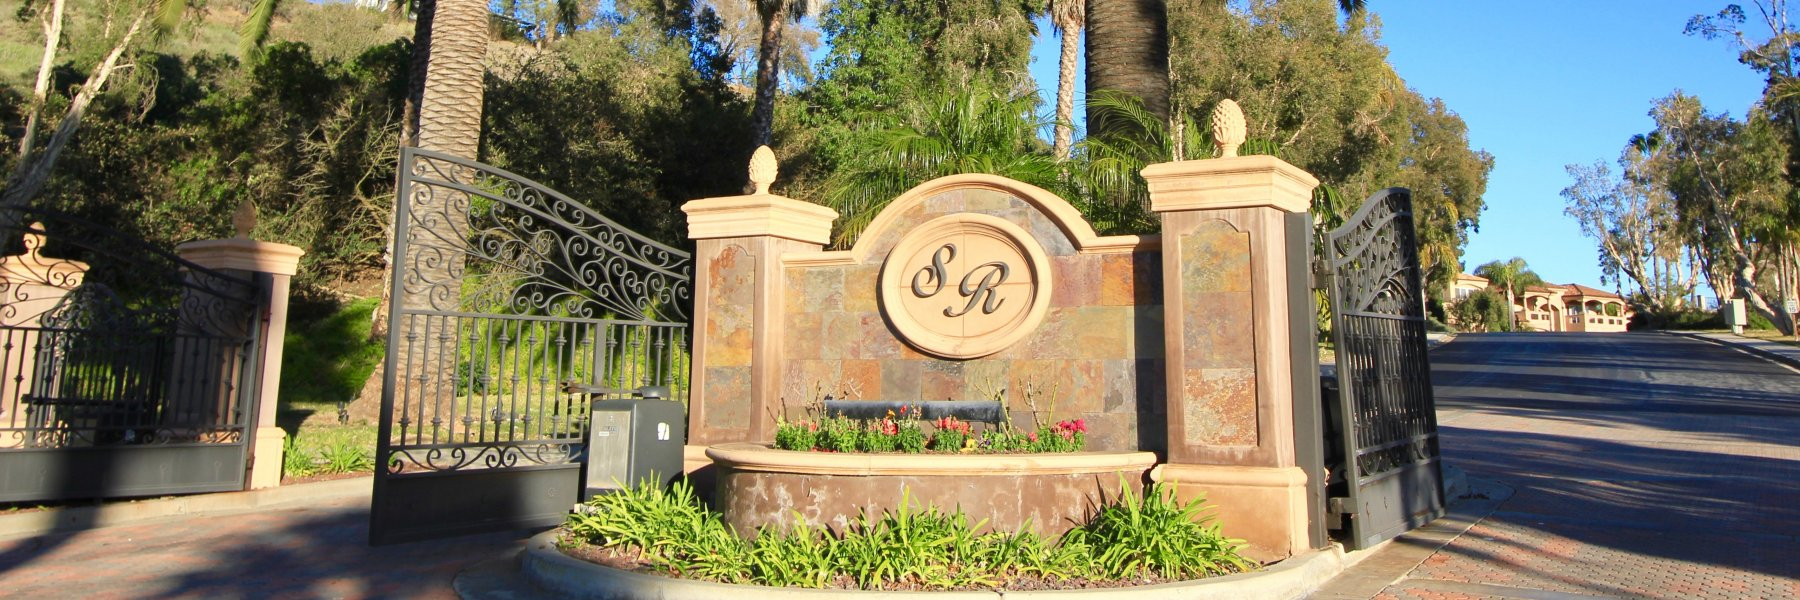 Sea Ridge Estates is a community of homes in San Clemente Ca